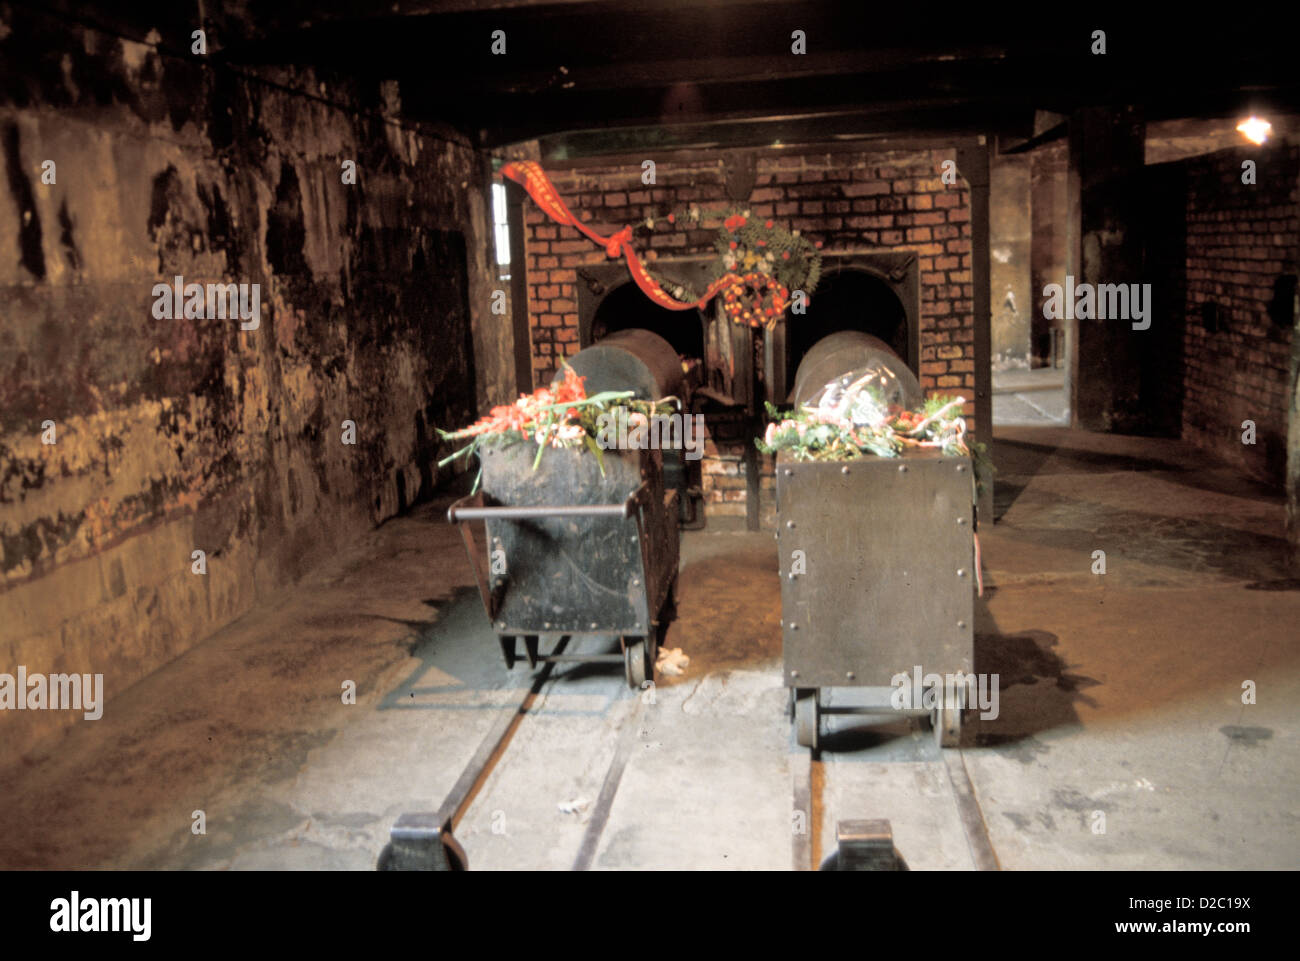 Poland, Auschwitz. Wagons For Loading Corpses Into Crematorium. Ovens In Background. - Stock Image